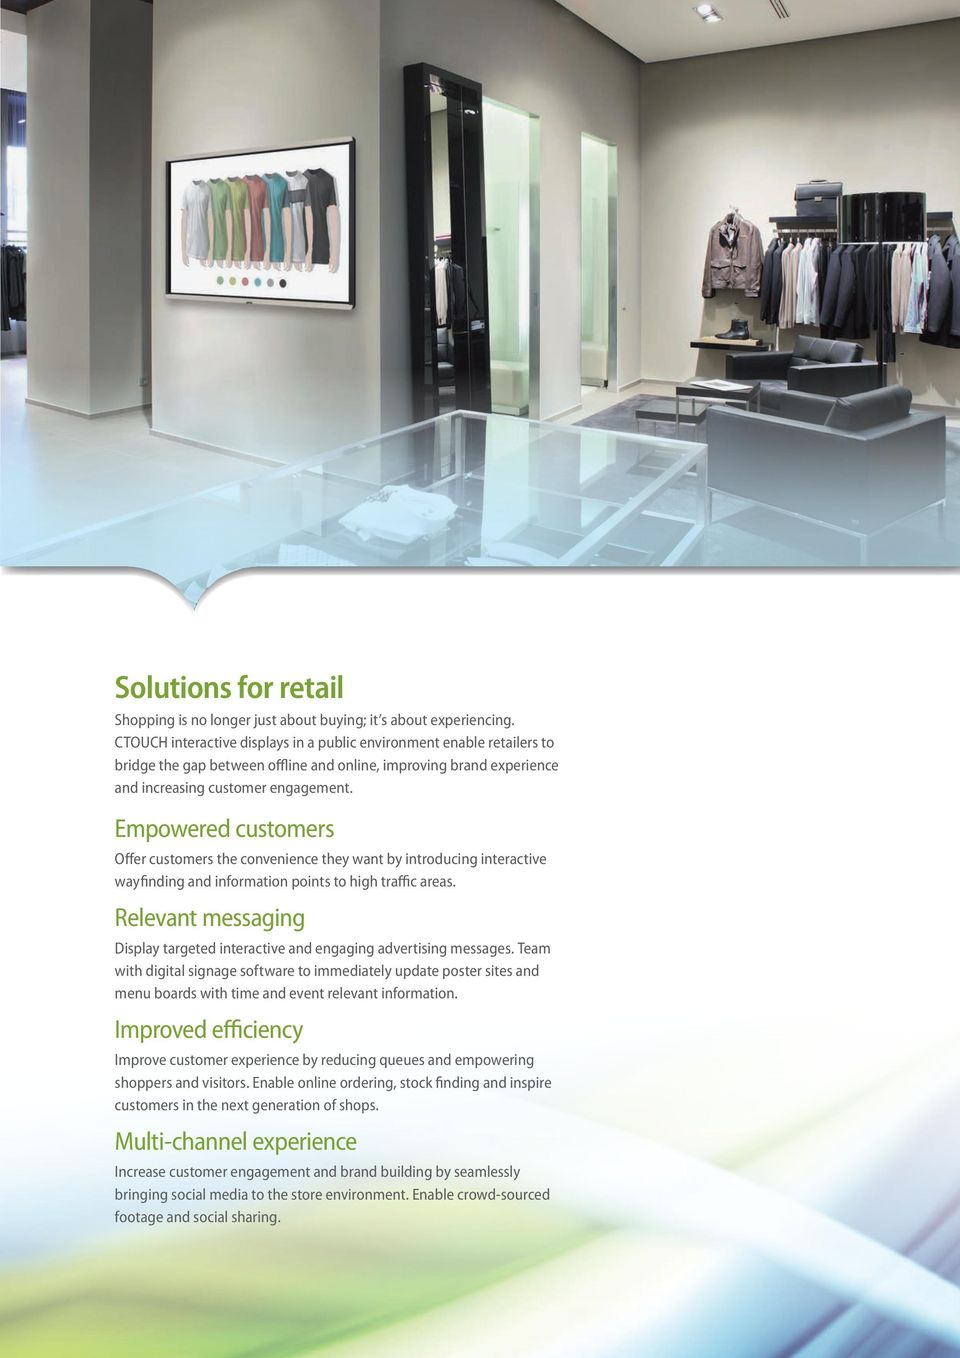 Empowered customers Offer customers the convenience they want by introducing interactive wayfinding and information points to high traffic areas.